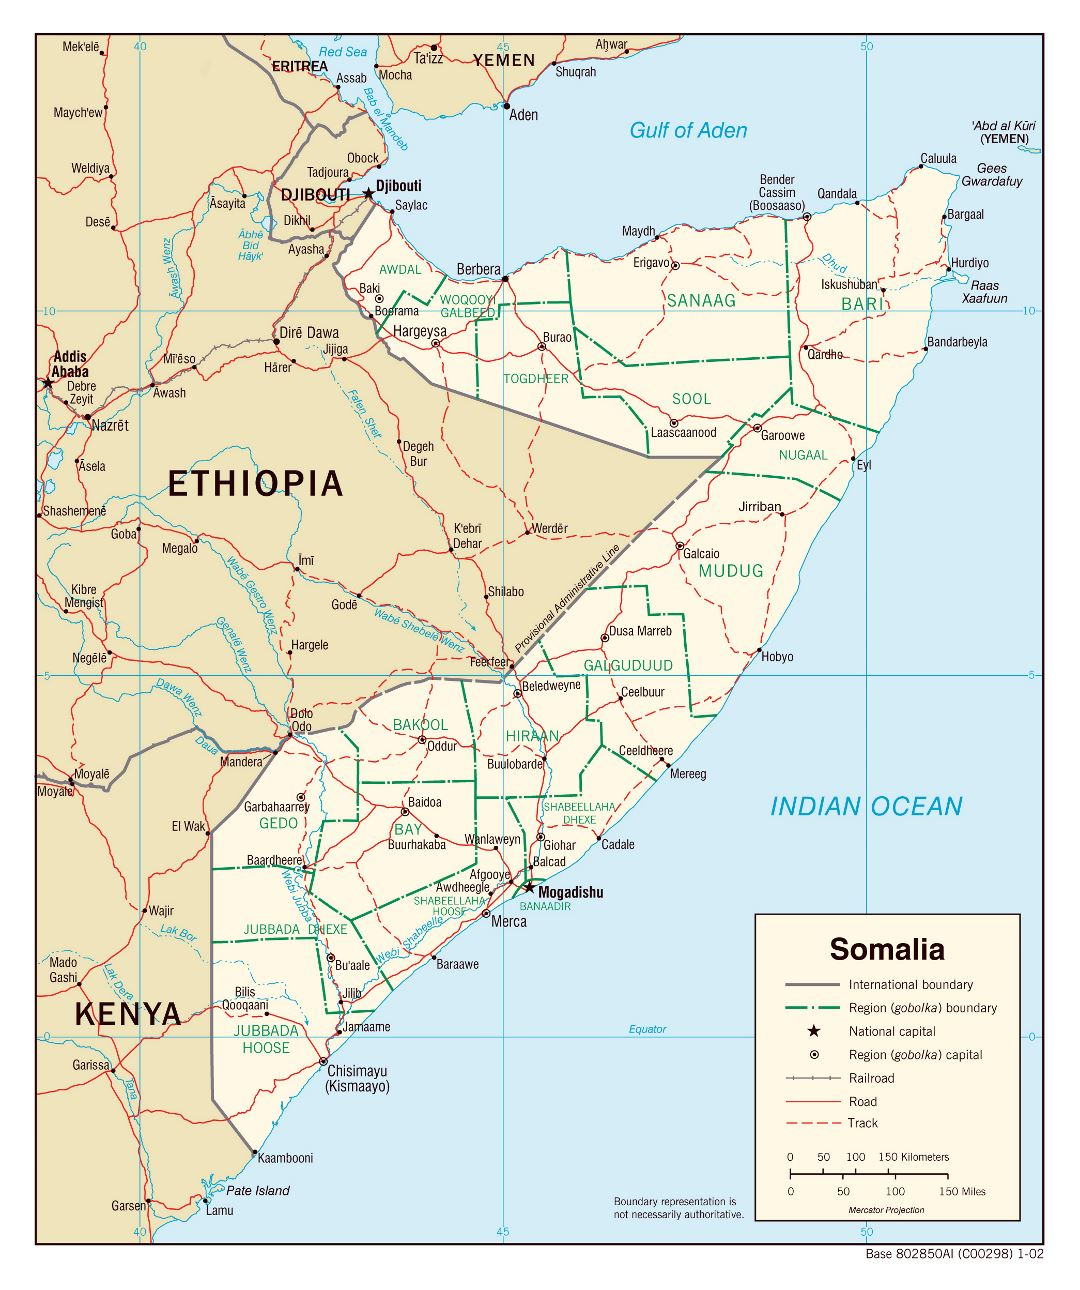 Large political and administrative map of Somalia with roads, railroads and major cities - 2002